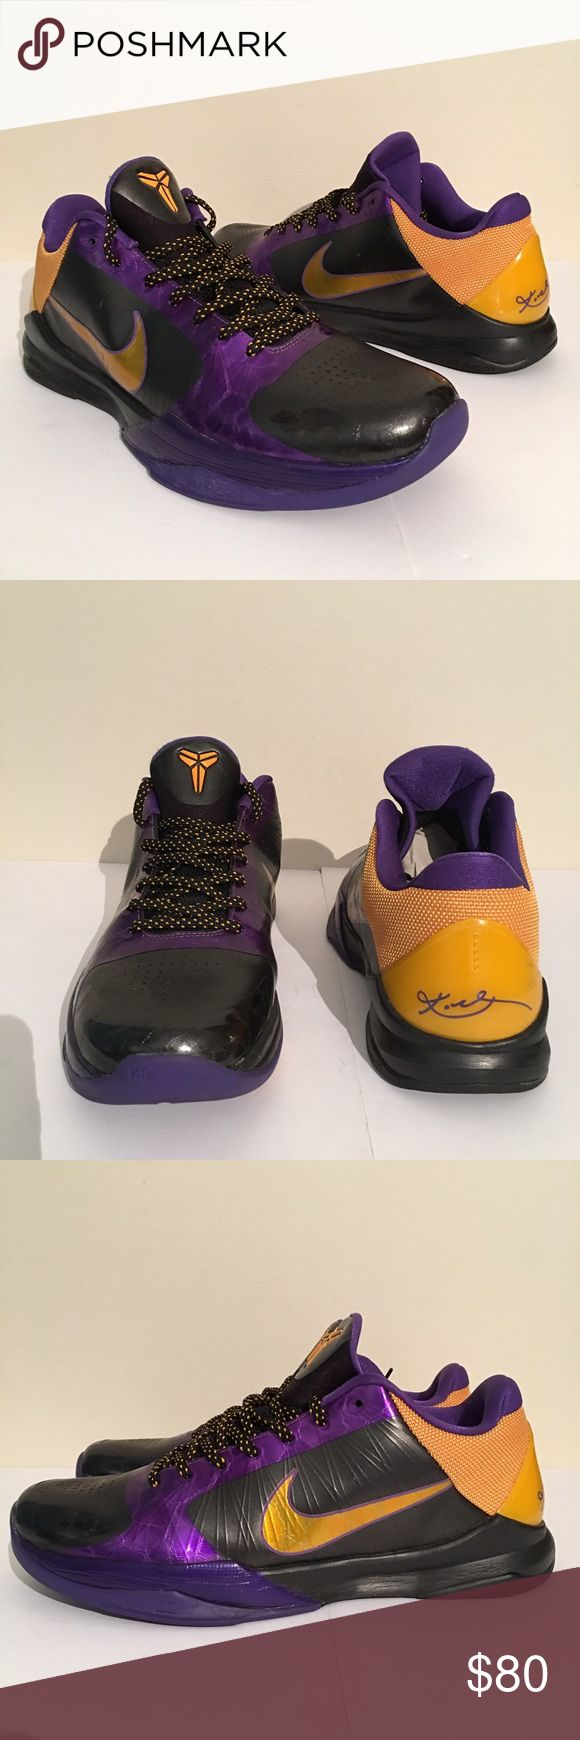 Nike Kobe V men's size 11.5 Nike Kobe V men's size 11.5. Lightly worn. Nike Shoes Athletic Shoes